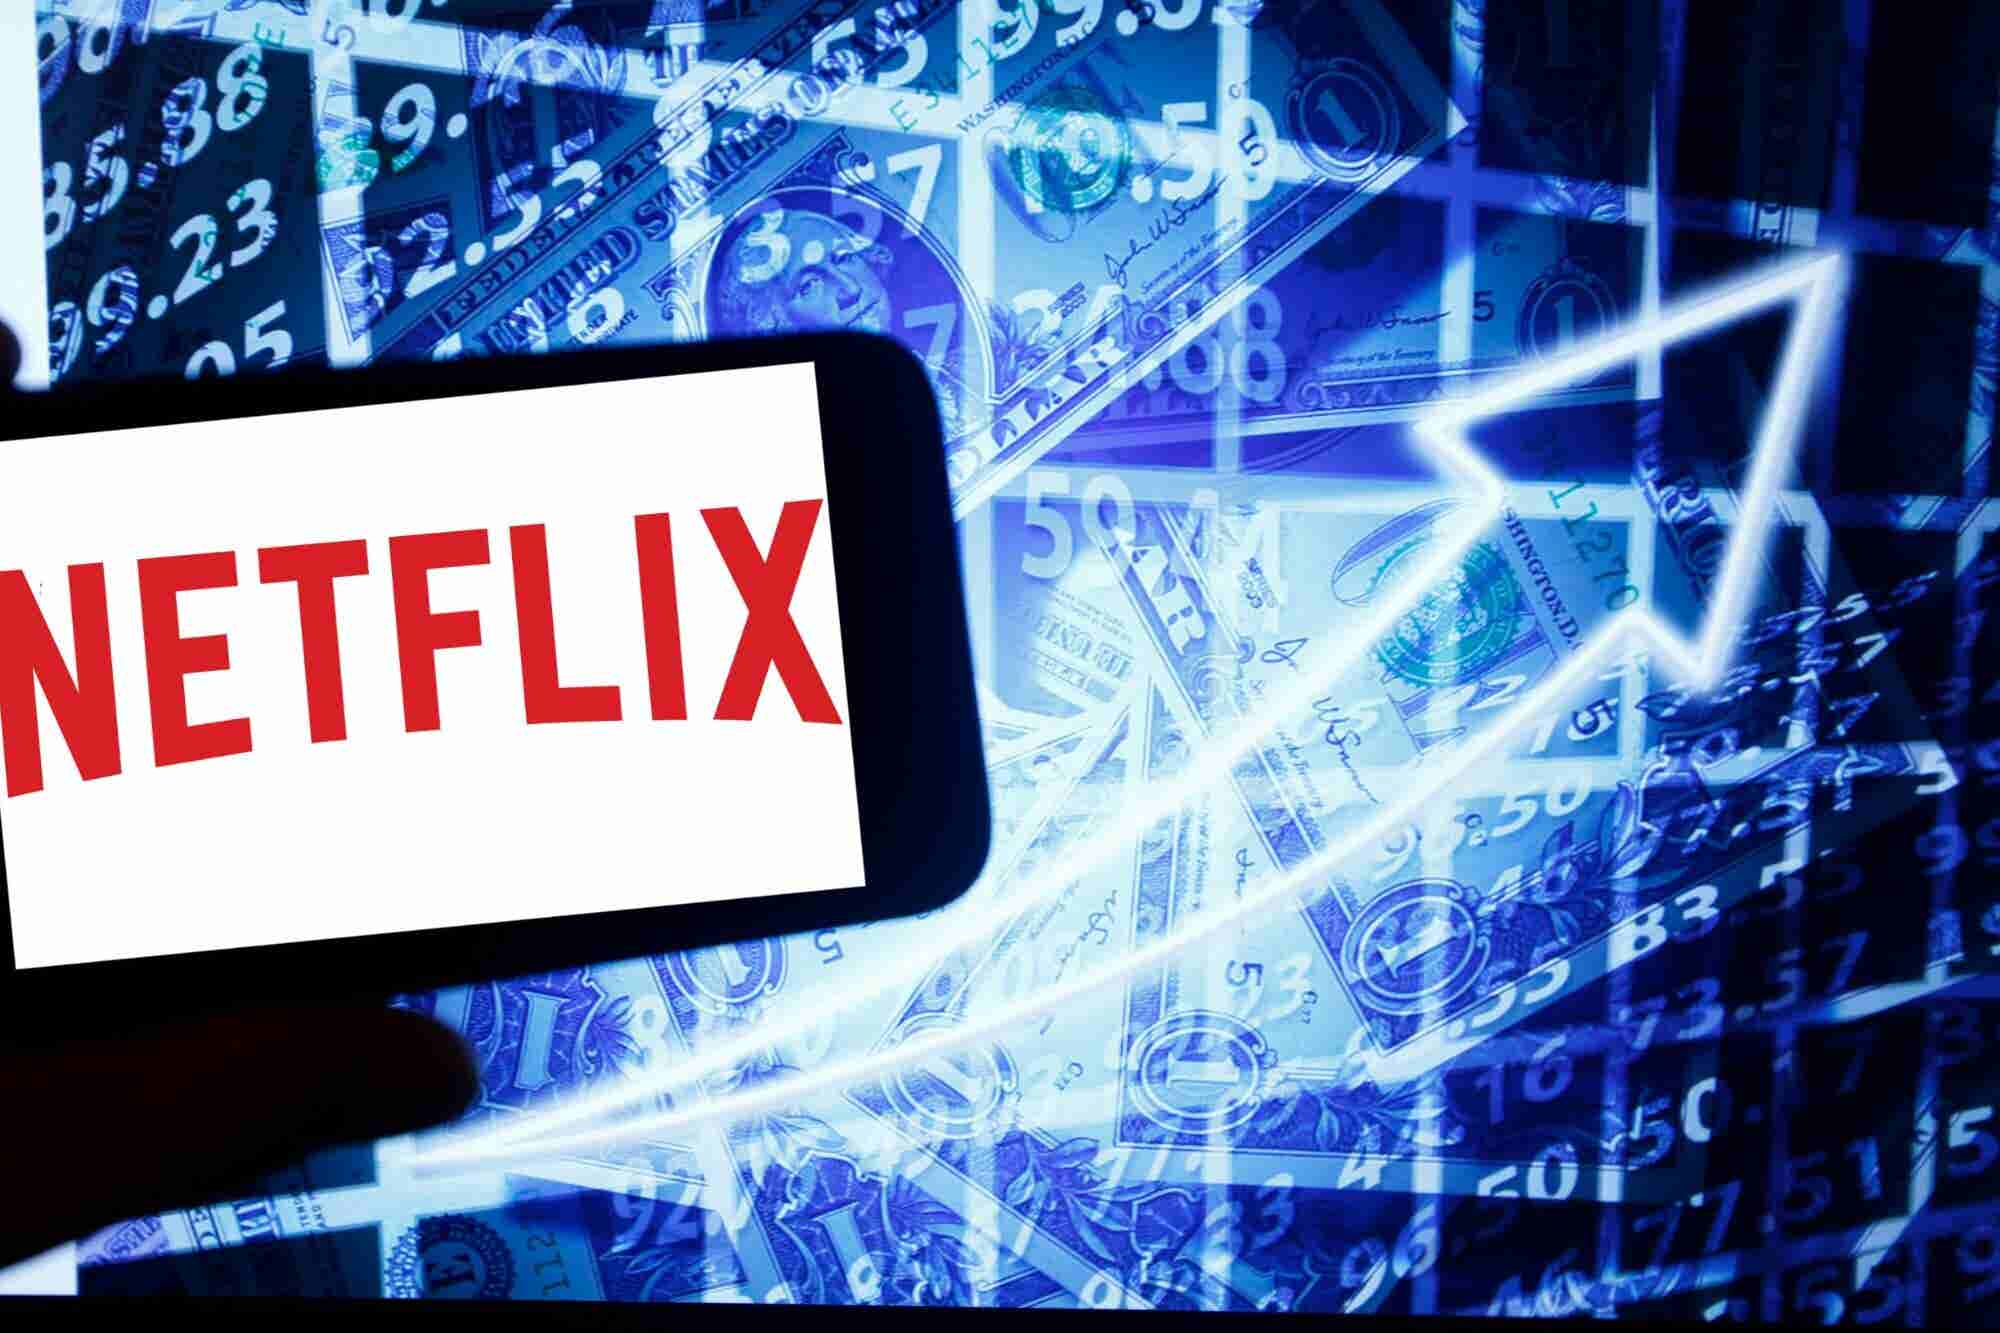 Netflix Has Been the Hottest Stock Since Christmas. Here's Why.